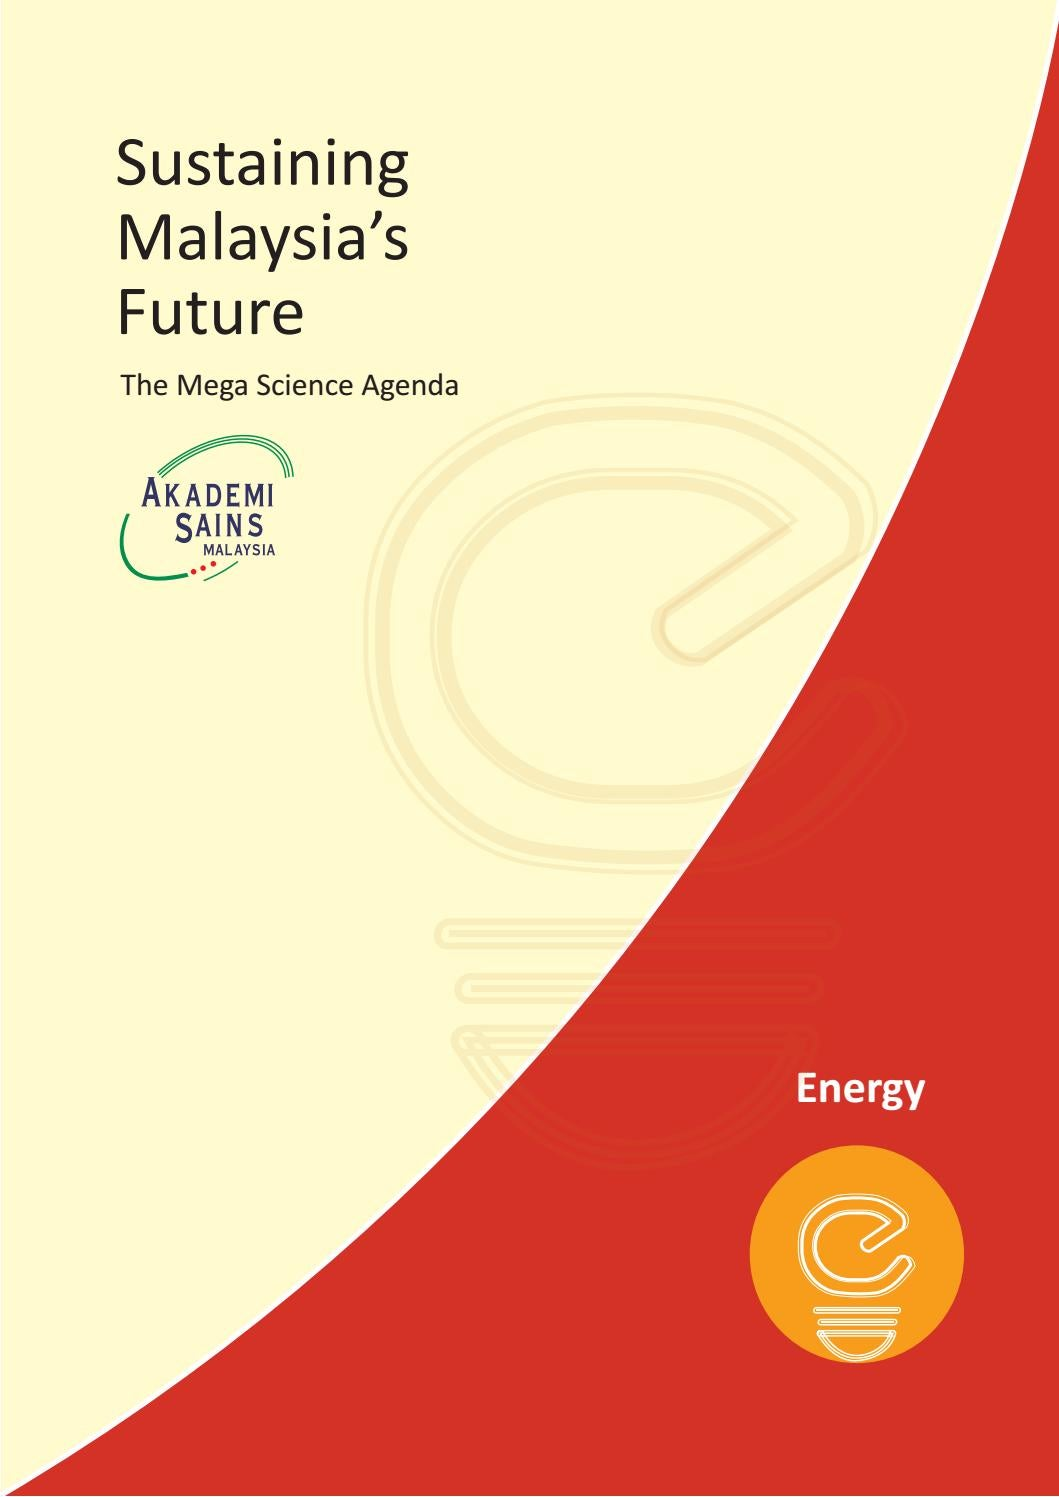 The Mega Science Agenda Energy By Academy Of Sciences Malaysia Issuu Wilderness Hubpages Com Hub How To Wire A 3 Way Switch Wiring Diagram